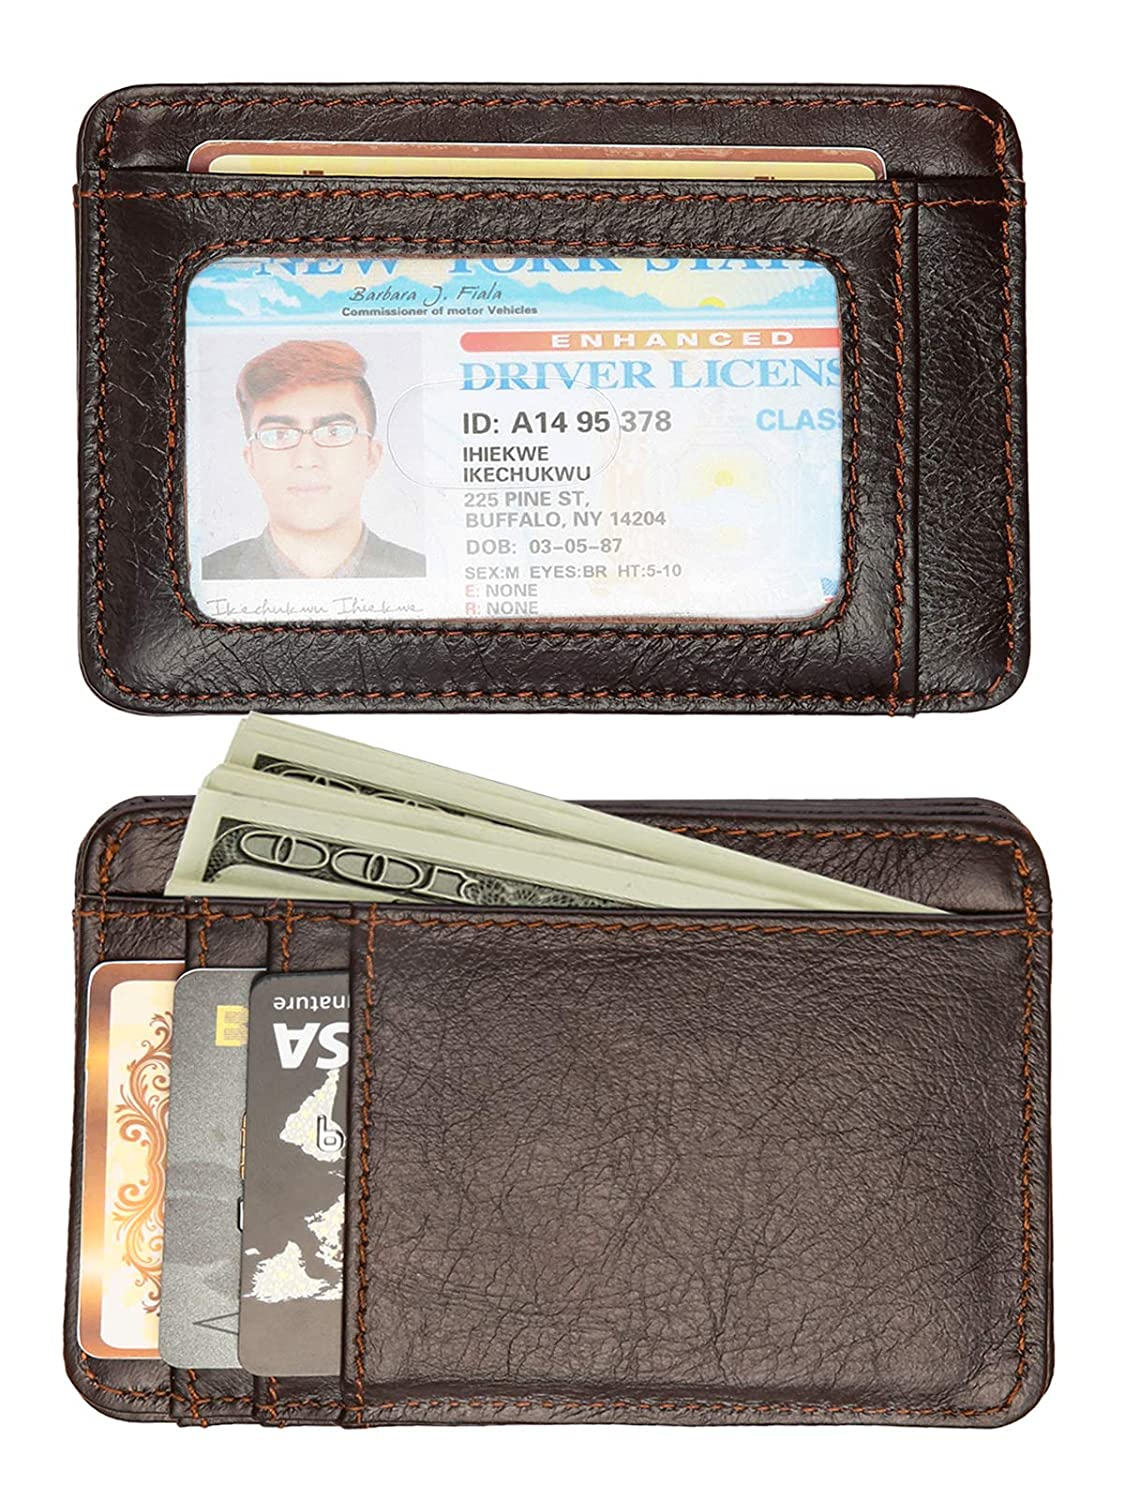 Euro Mond Genuine Cow Hide Leather Wallet with ID Window, Minimalist Secure Slim Thin Credit Card Holder for Men Women front back pocket KB02-BN